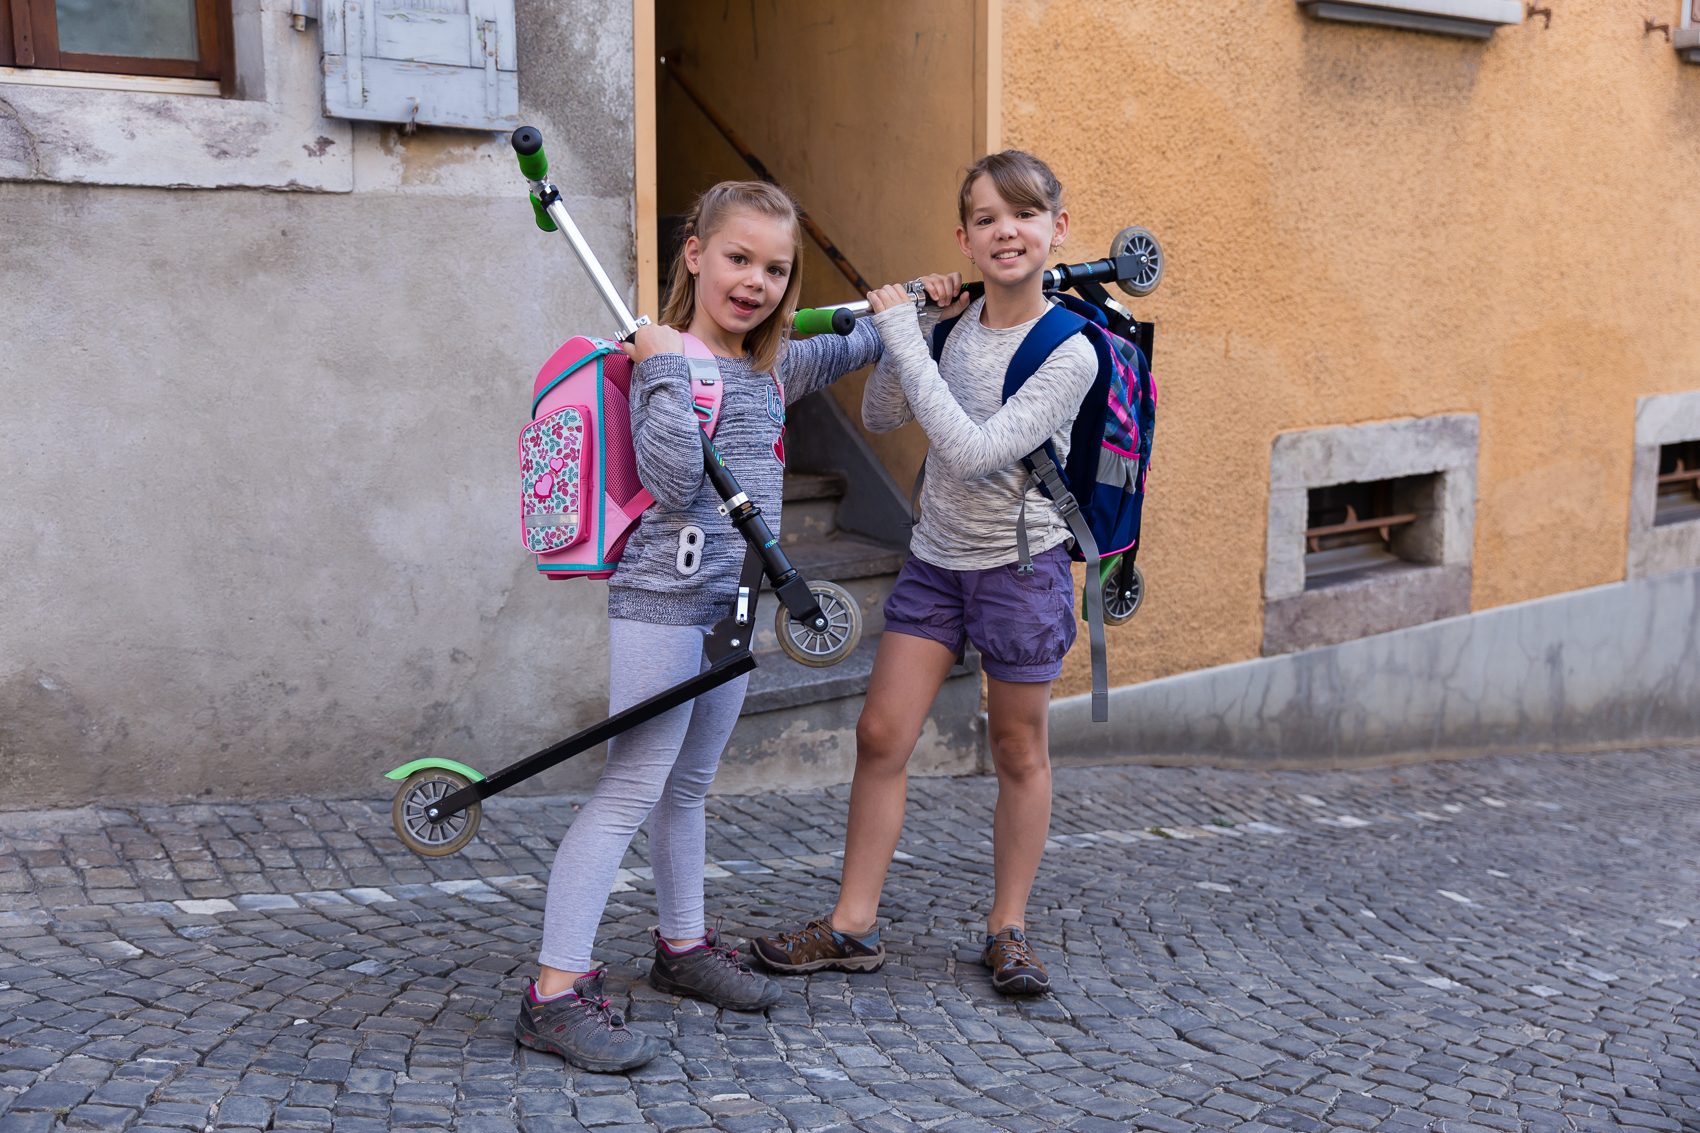 Meet Daisy and Scoot - our modes of transport to and from school!